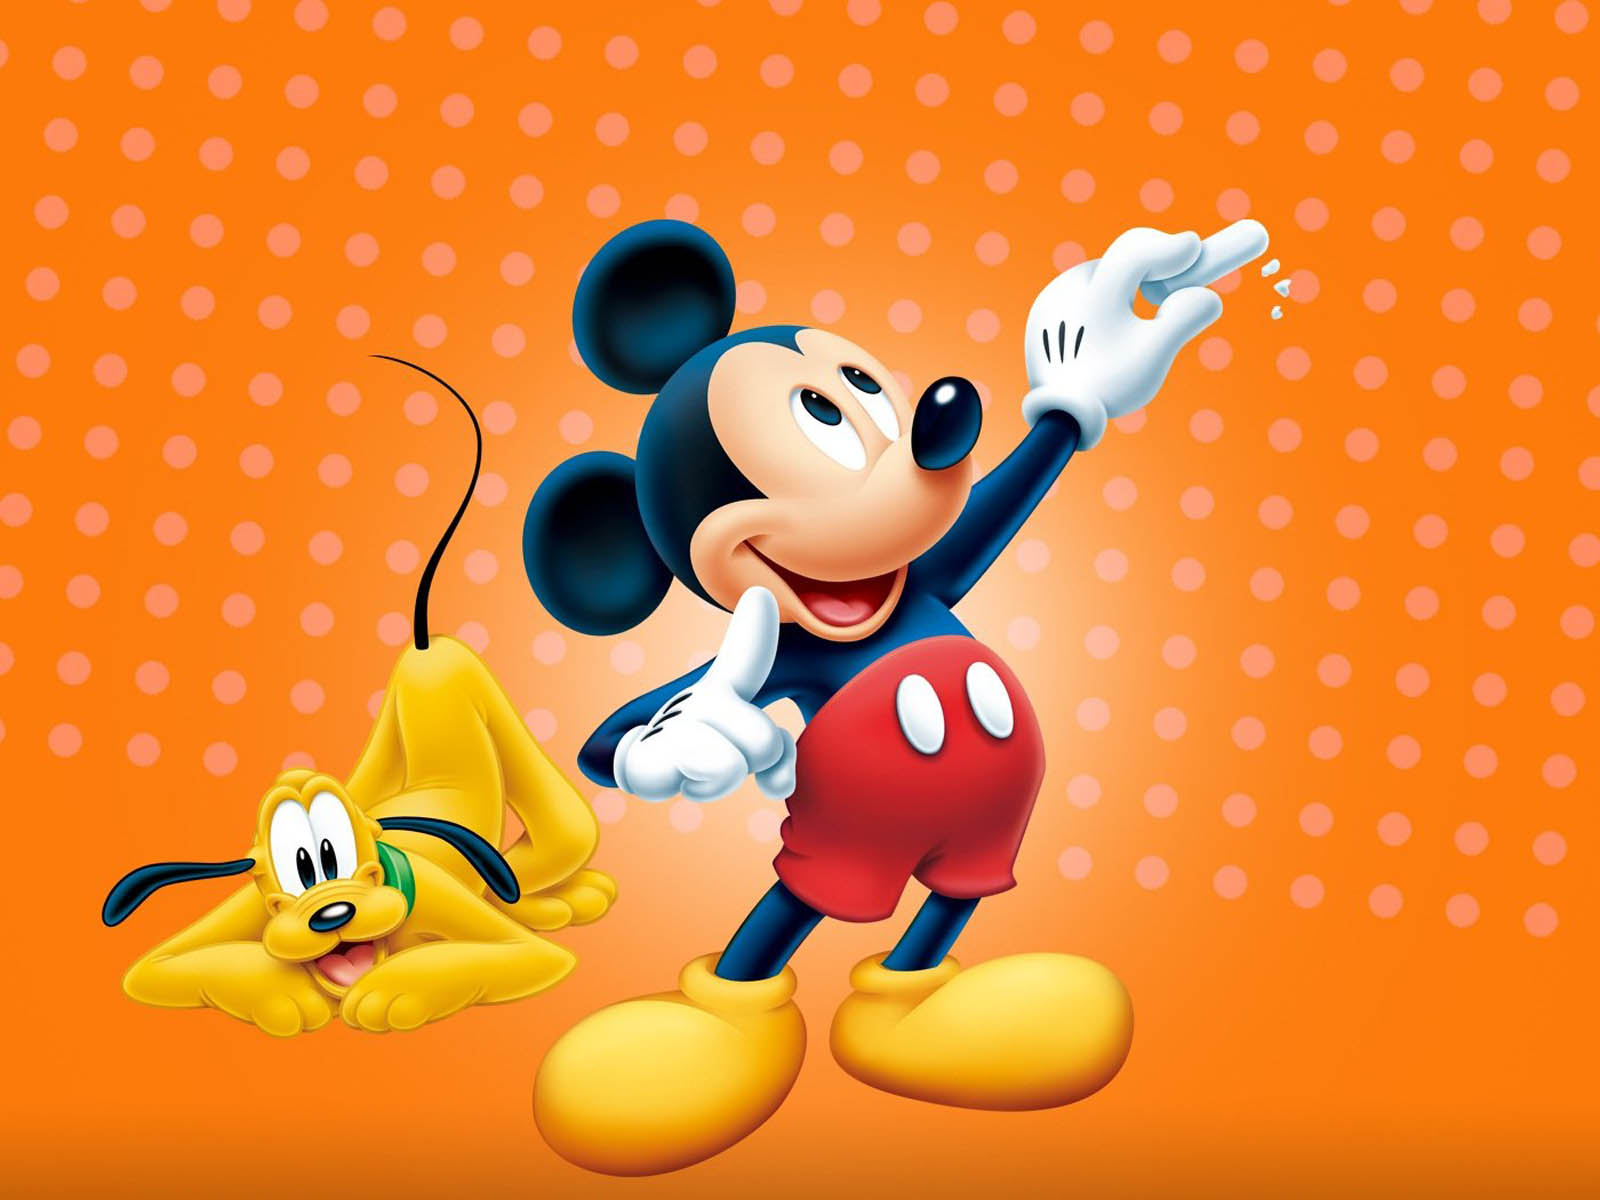 Tag Mickey Mouse Wallpapers Images Photos Pictures and Backgrounds 1600x1200